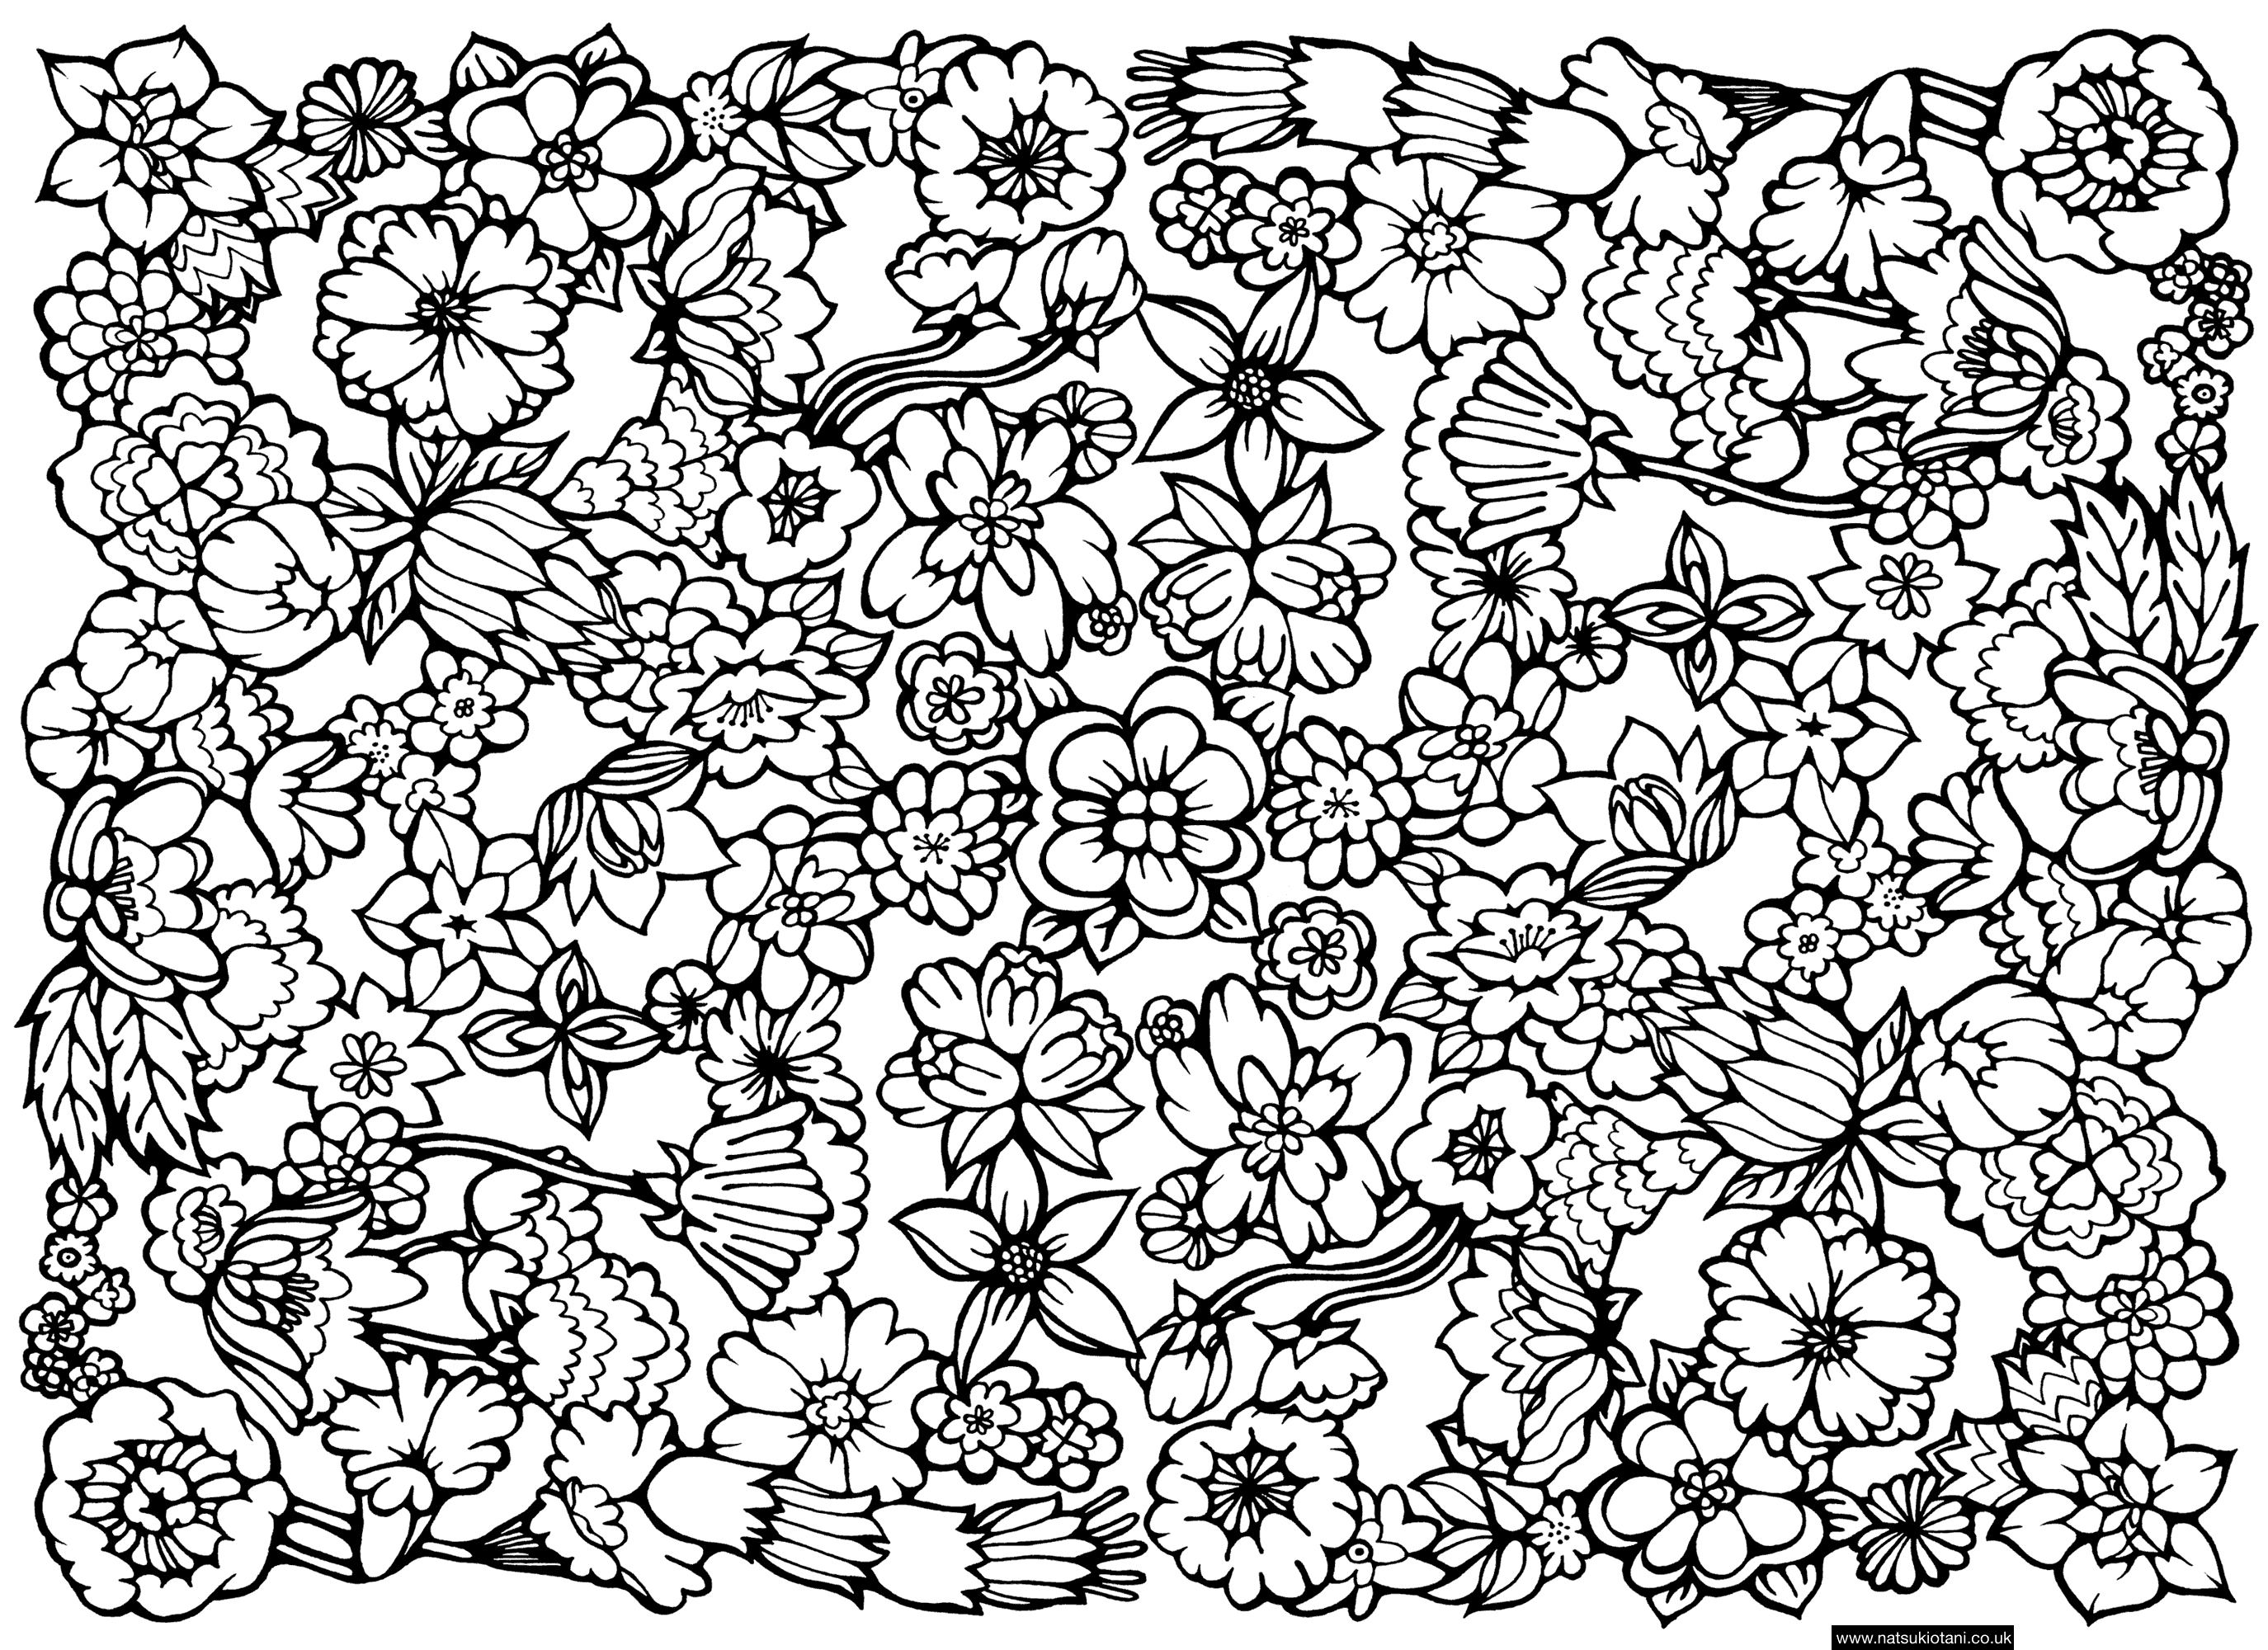 free coloring pages of difficult patterns art category - Coloring In Patterns